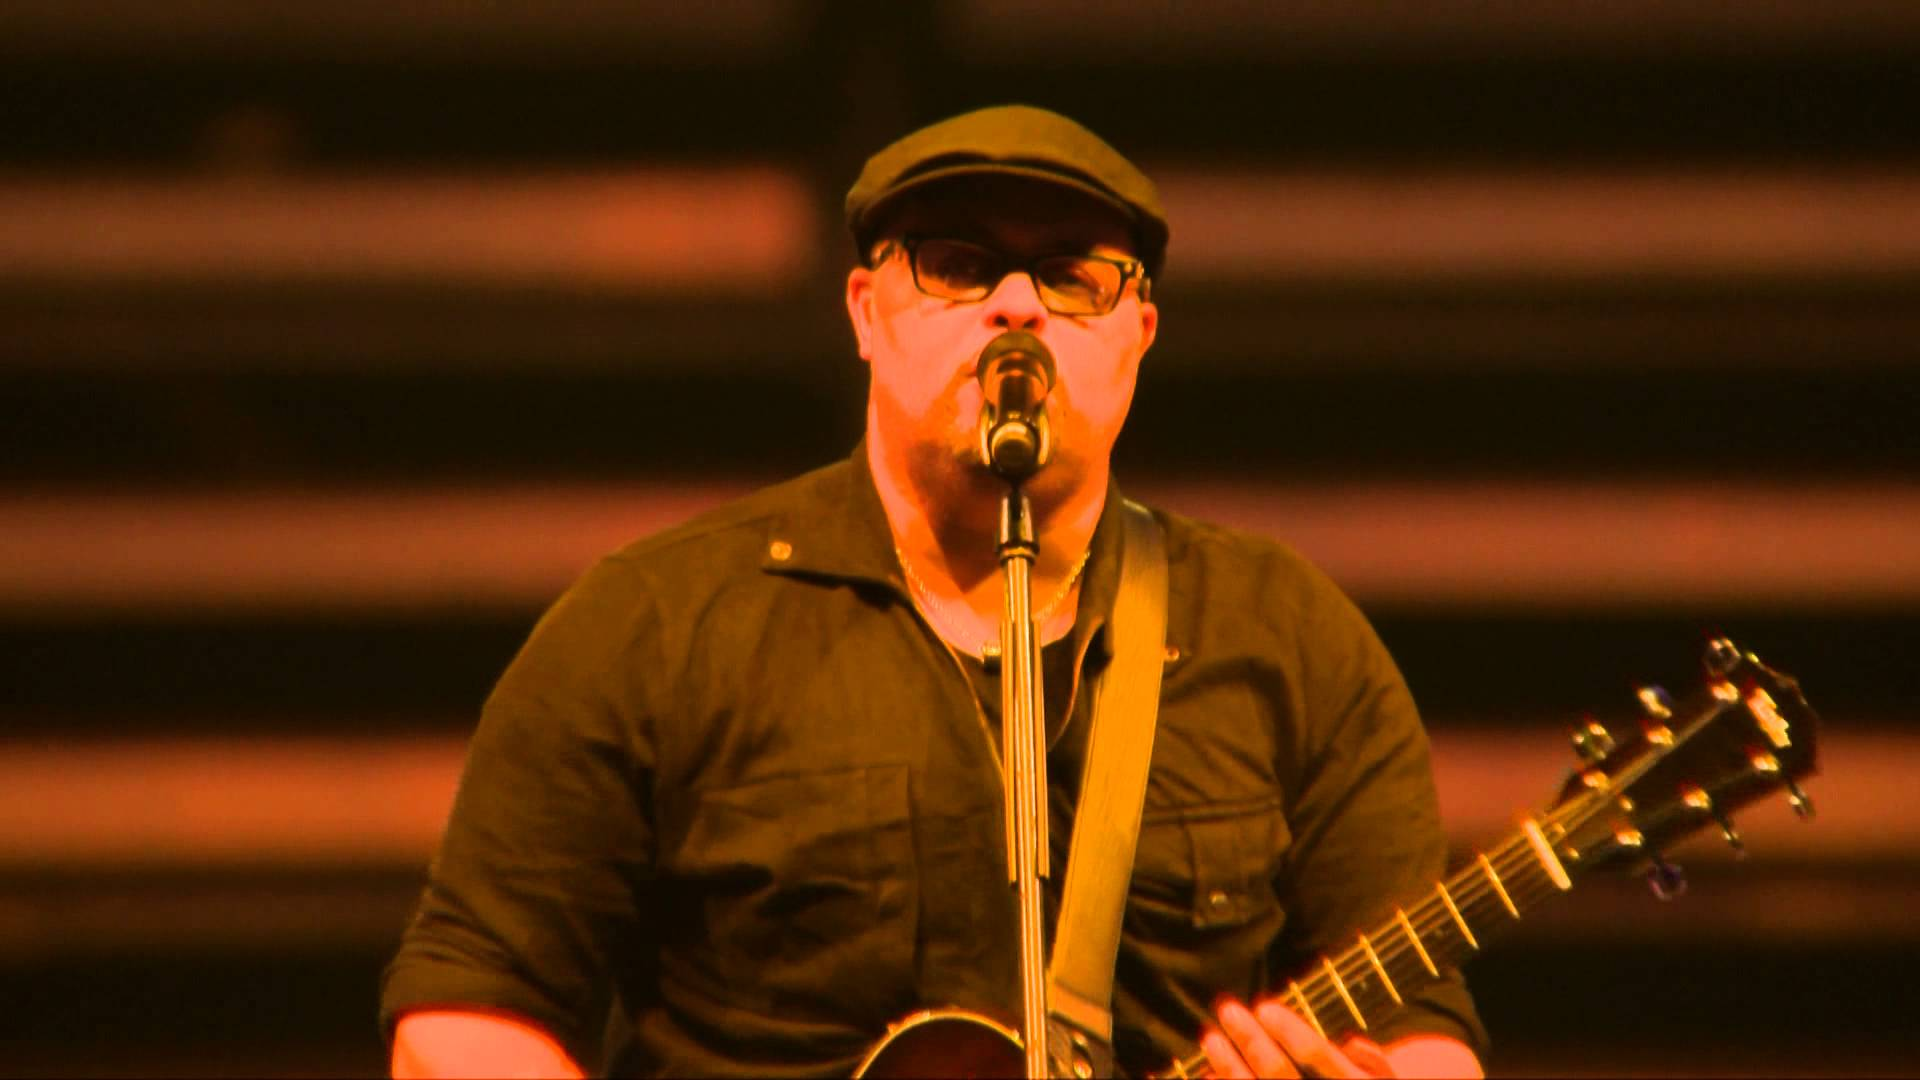 Israel Houghton & New breed – Jesus the same